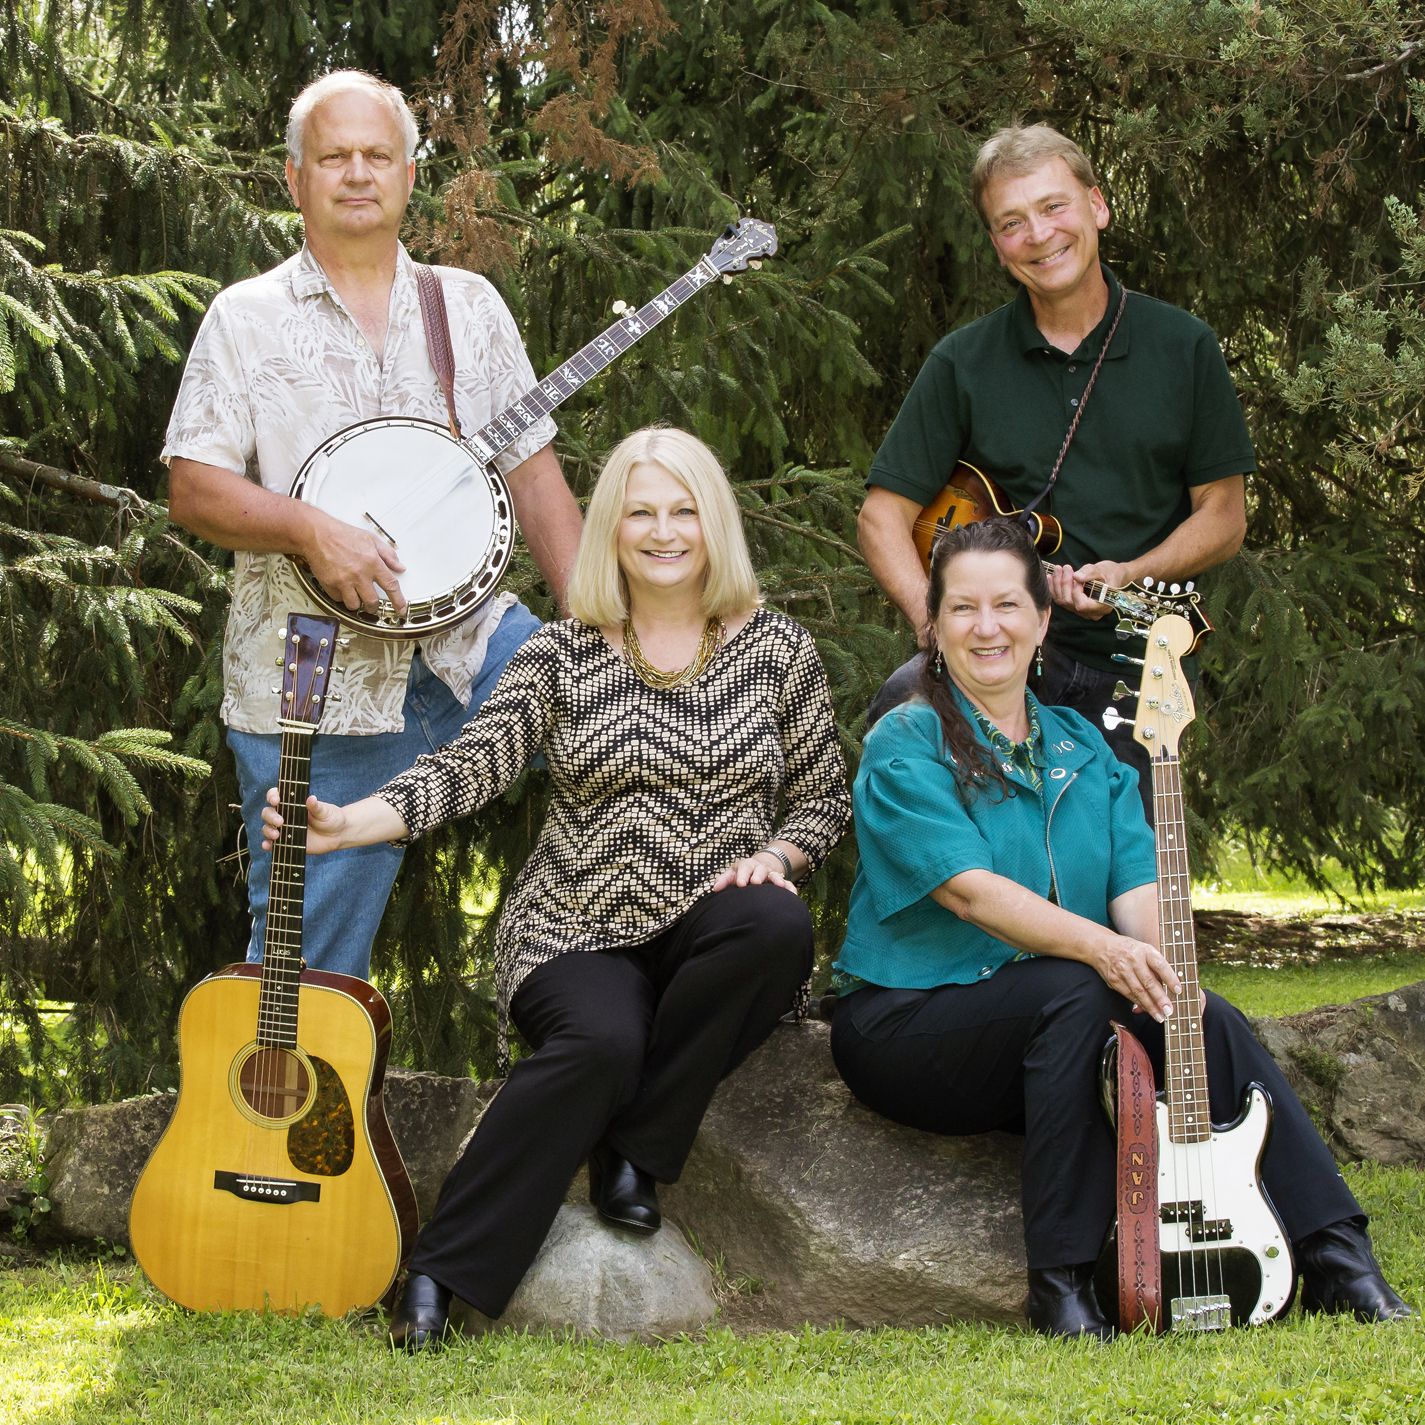 Photo of the Banister Family Bluegrass Band in a park/outdoor setting with grass and evergreen trees surrounding them: Two men standing, one holds a banjo (left), the other holds a mandolin (right). Two women are seated on a boulder, each with a guitar.